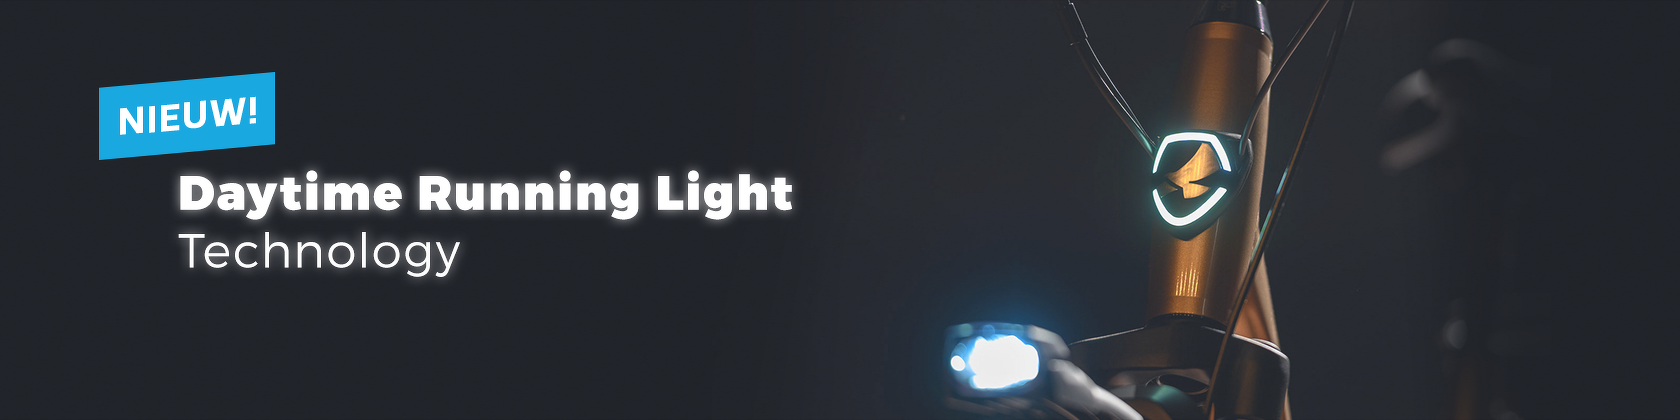 Daytime Running Light